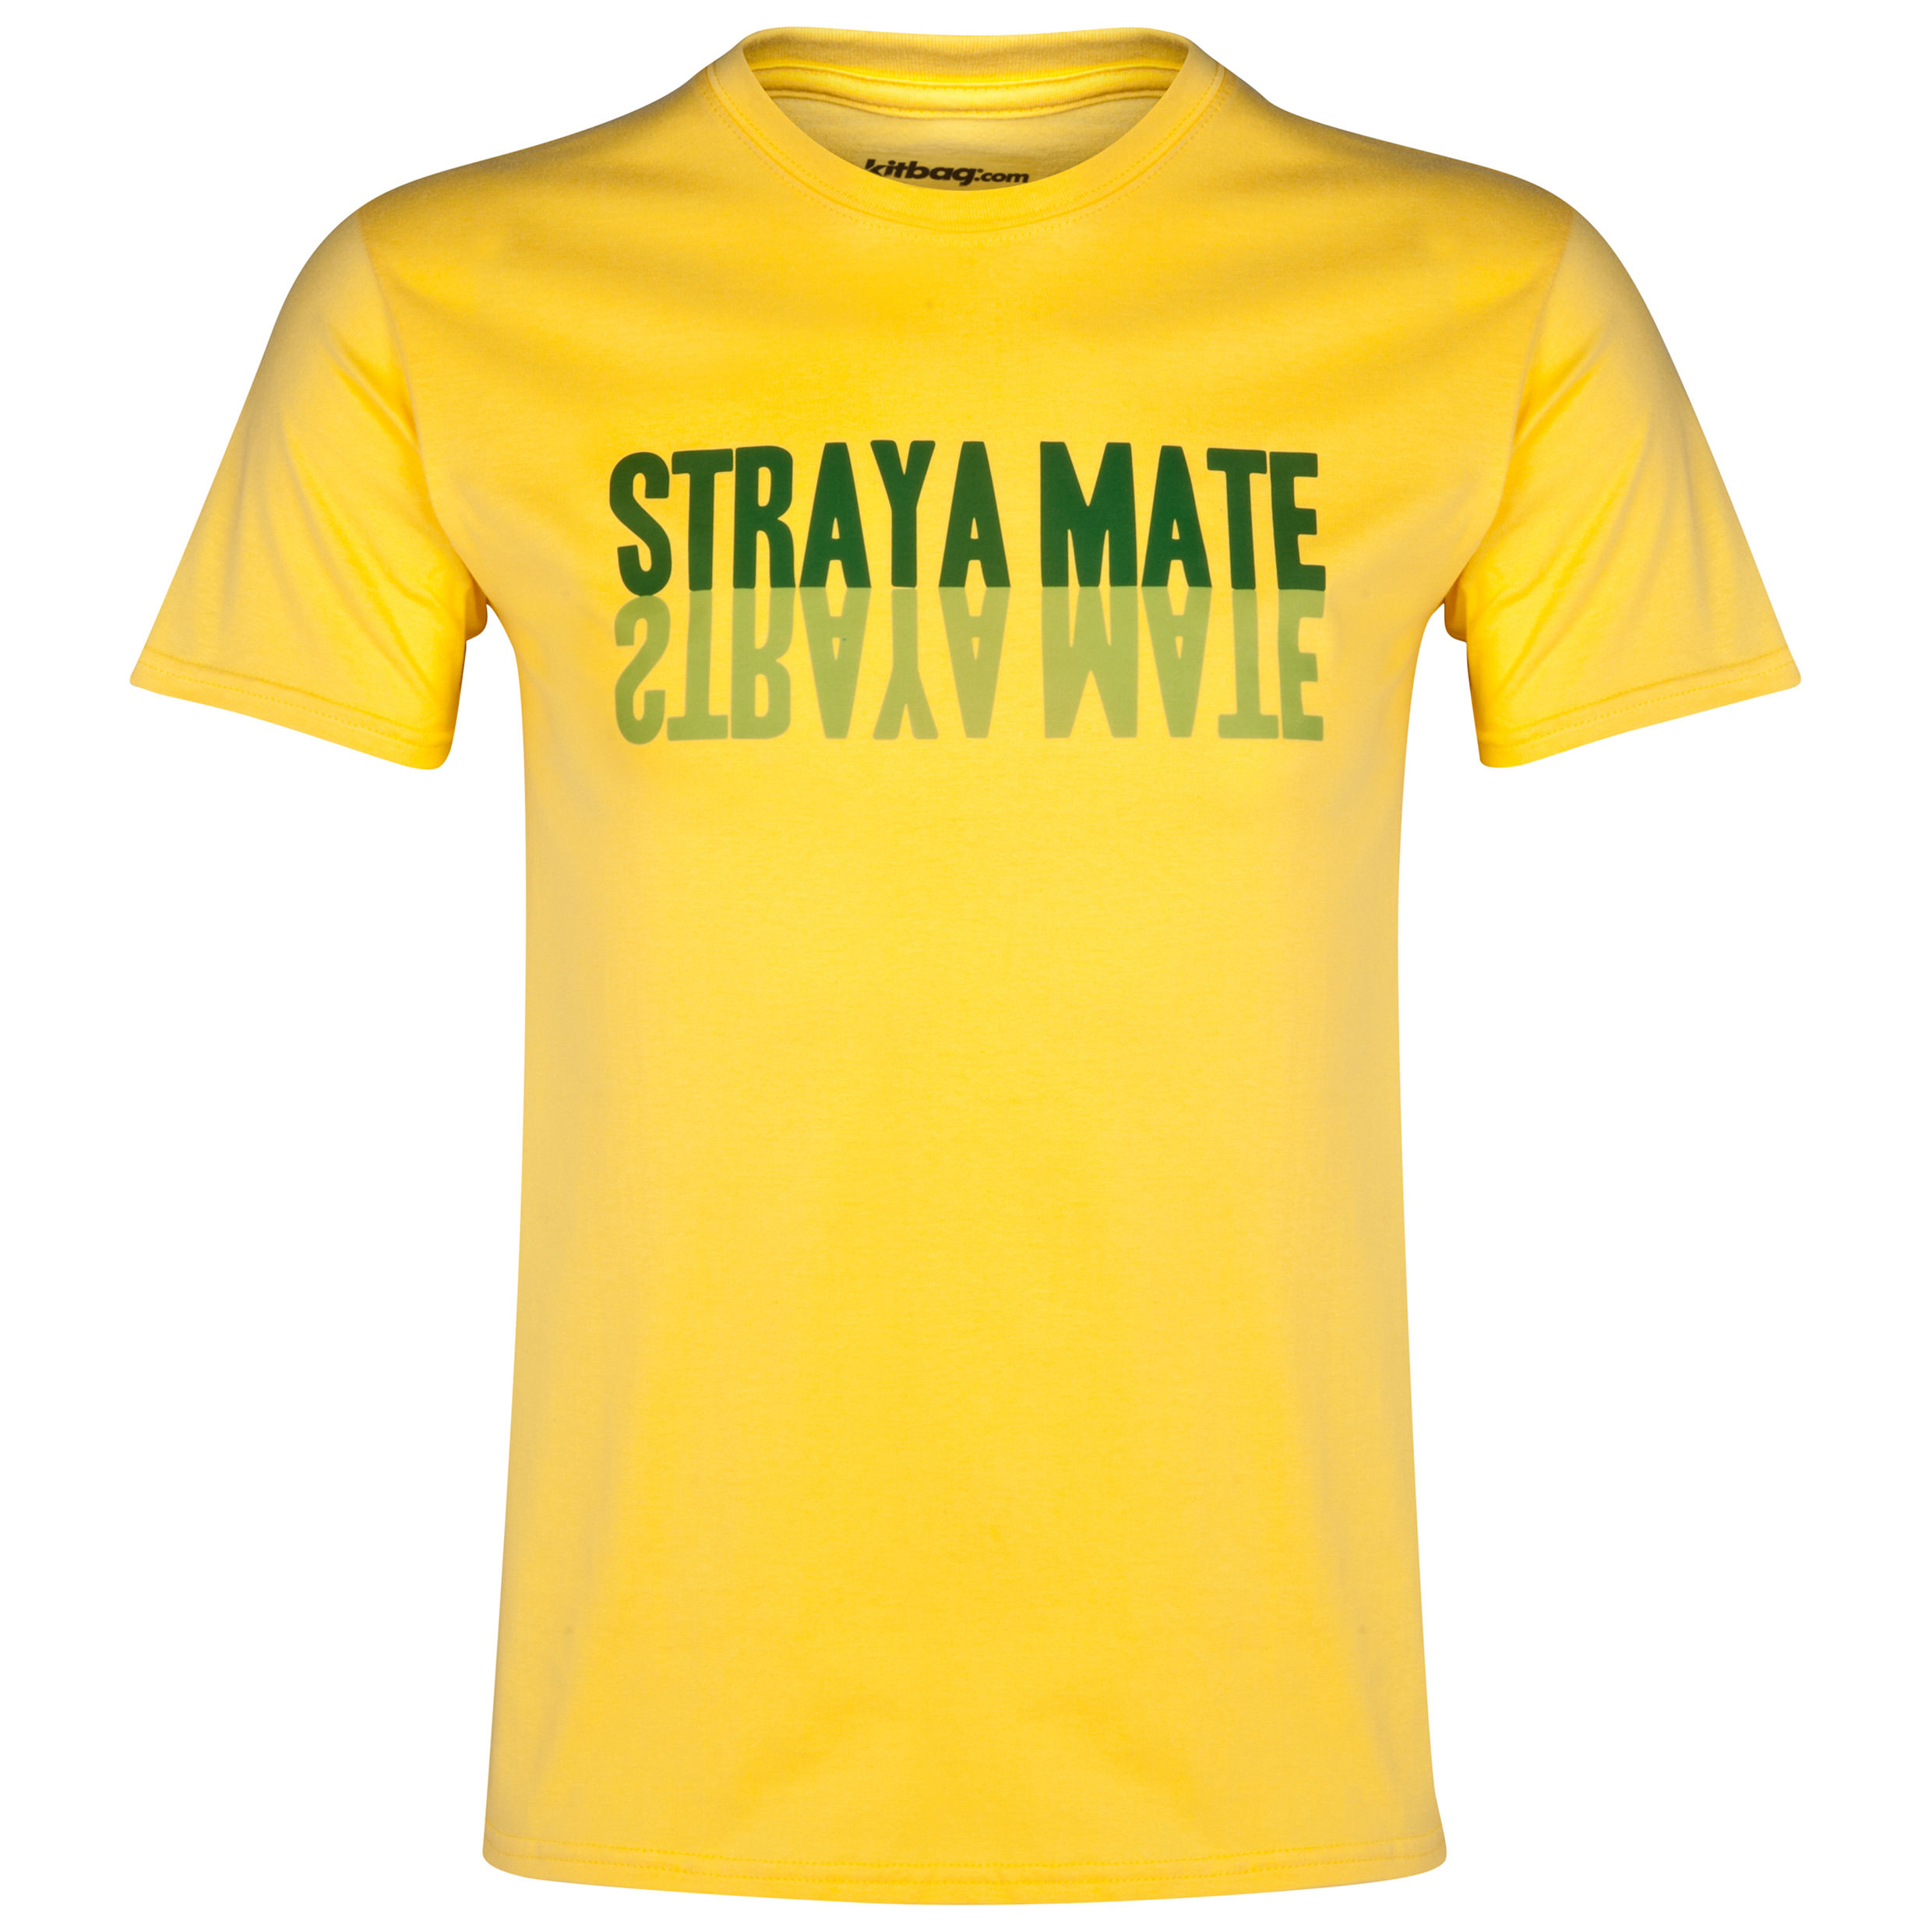 Australia Straya Mate T-Shirt Yellow